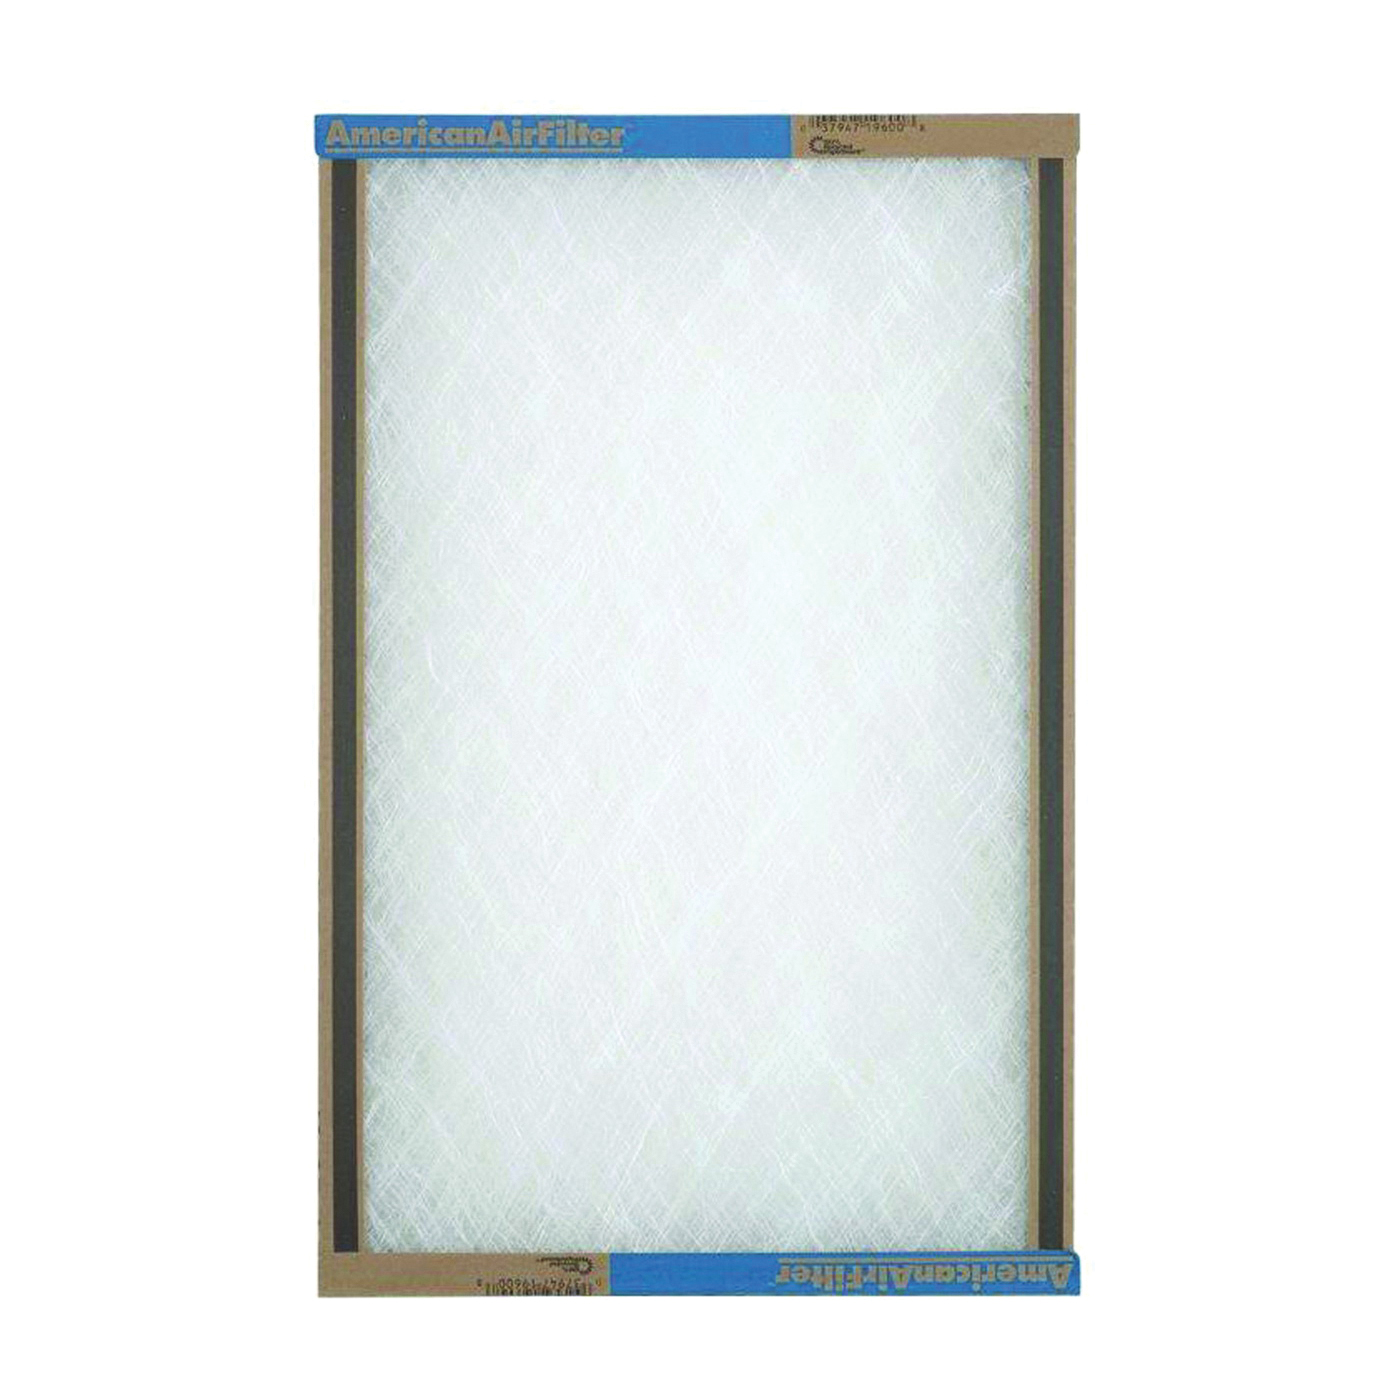 Picture of AAF 114141 Panel Filter, 14 in L, 14 in W, Chipboard Frame